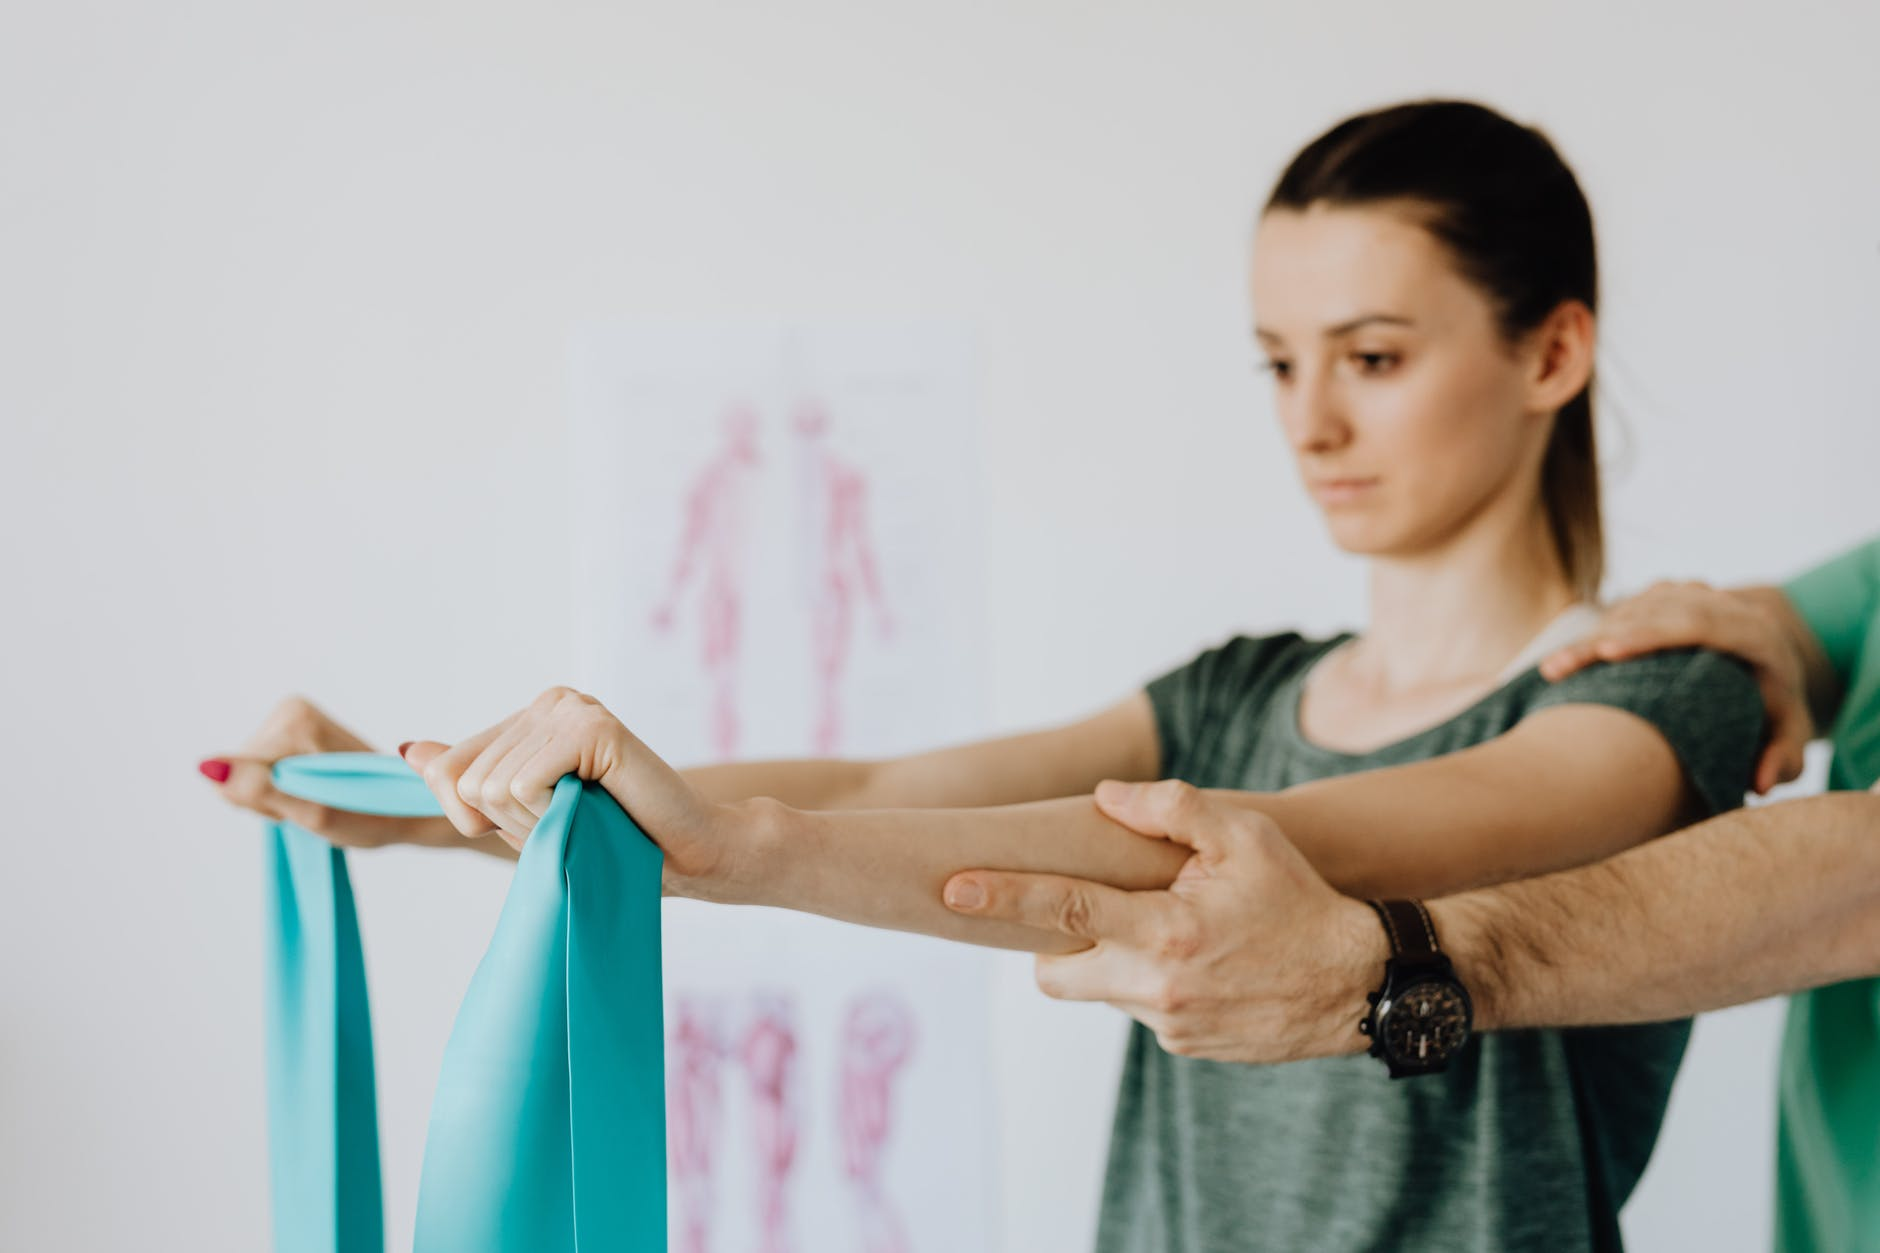 woman stretching elastic tape during medical examination by crop orthopedist